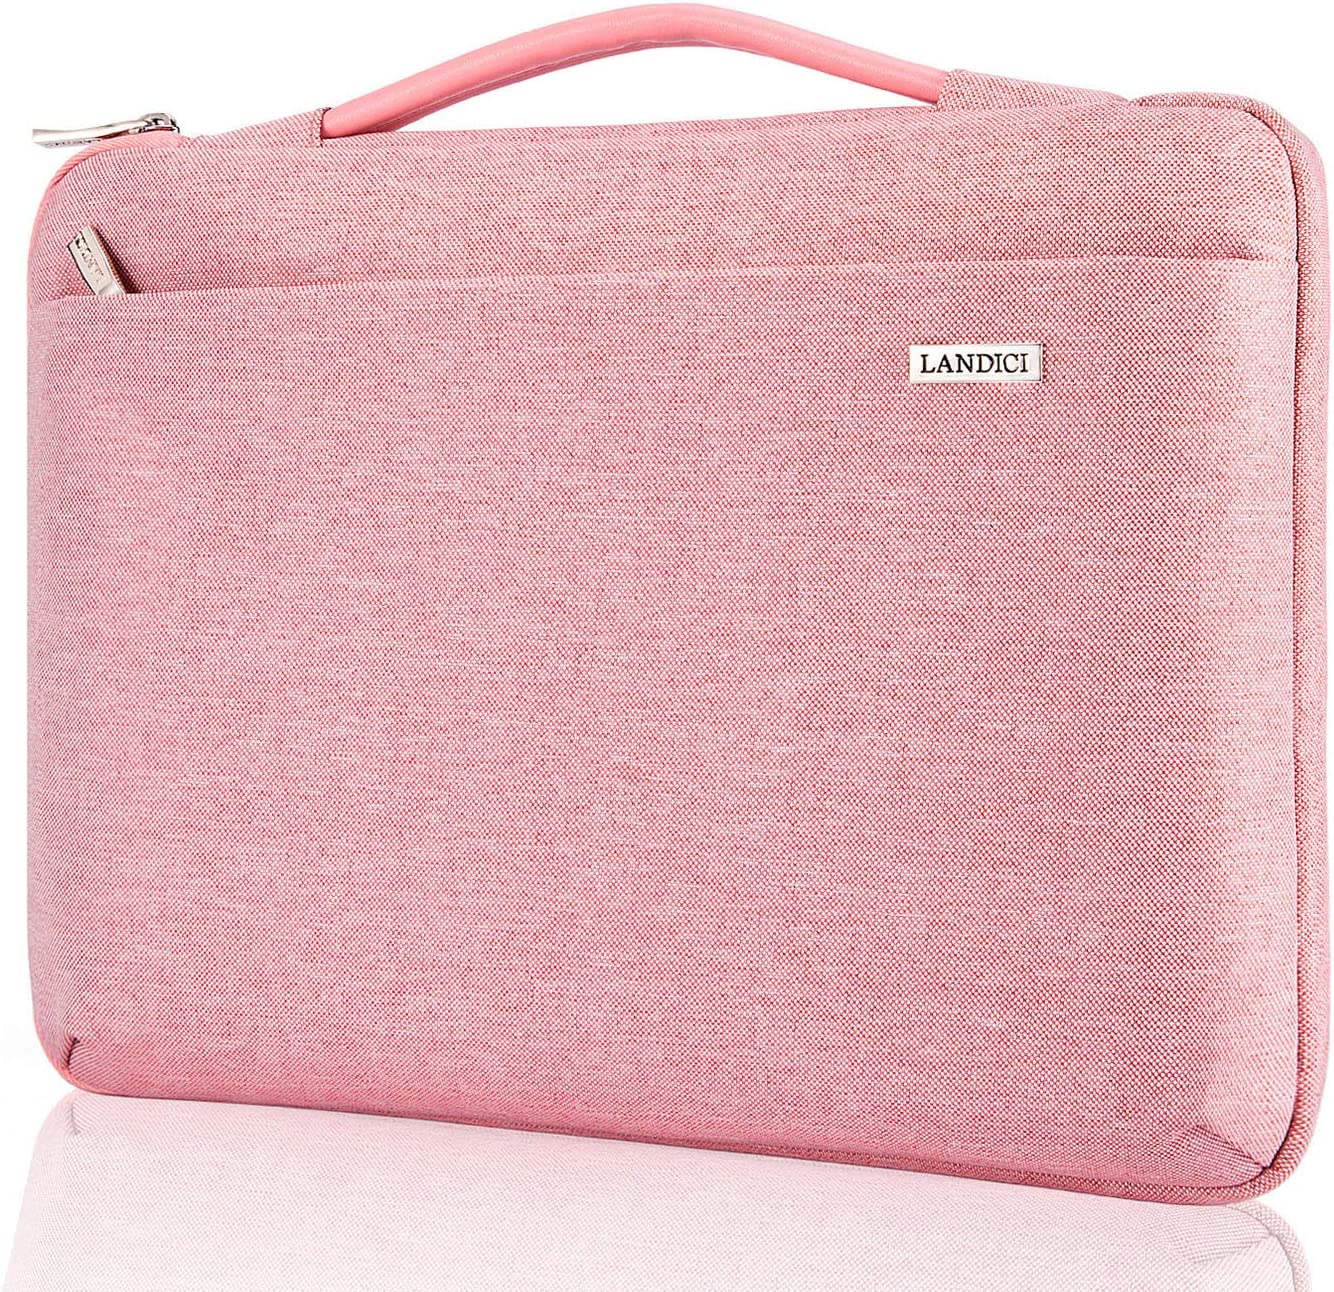 Landici Laptop Case Sleeve 11 11.6 Inch,360 Protective Waterproof Tablet Bag Cover Compatible with Lenovo Dell Acer HP Samsung Chromebook 3/4,Surface Pro 7 6/Go 2,MacBook Air,12